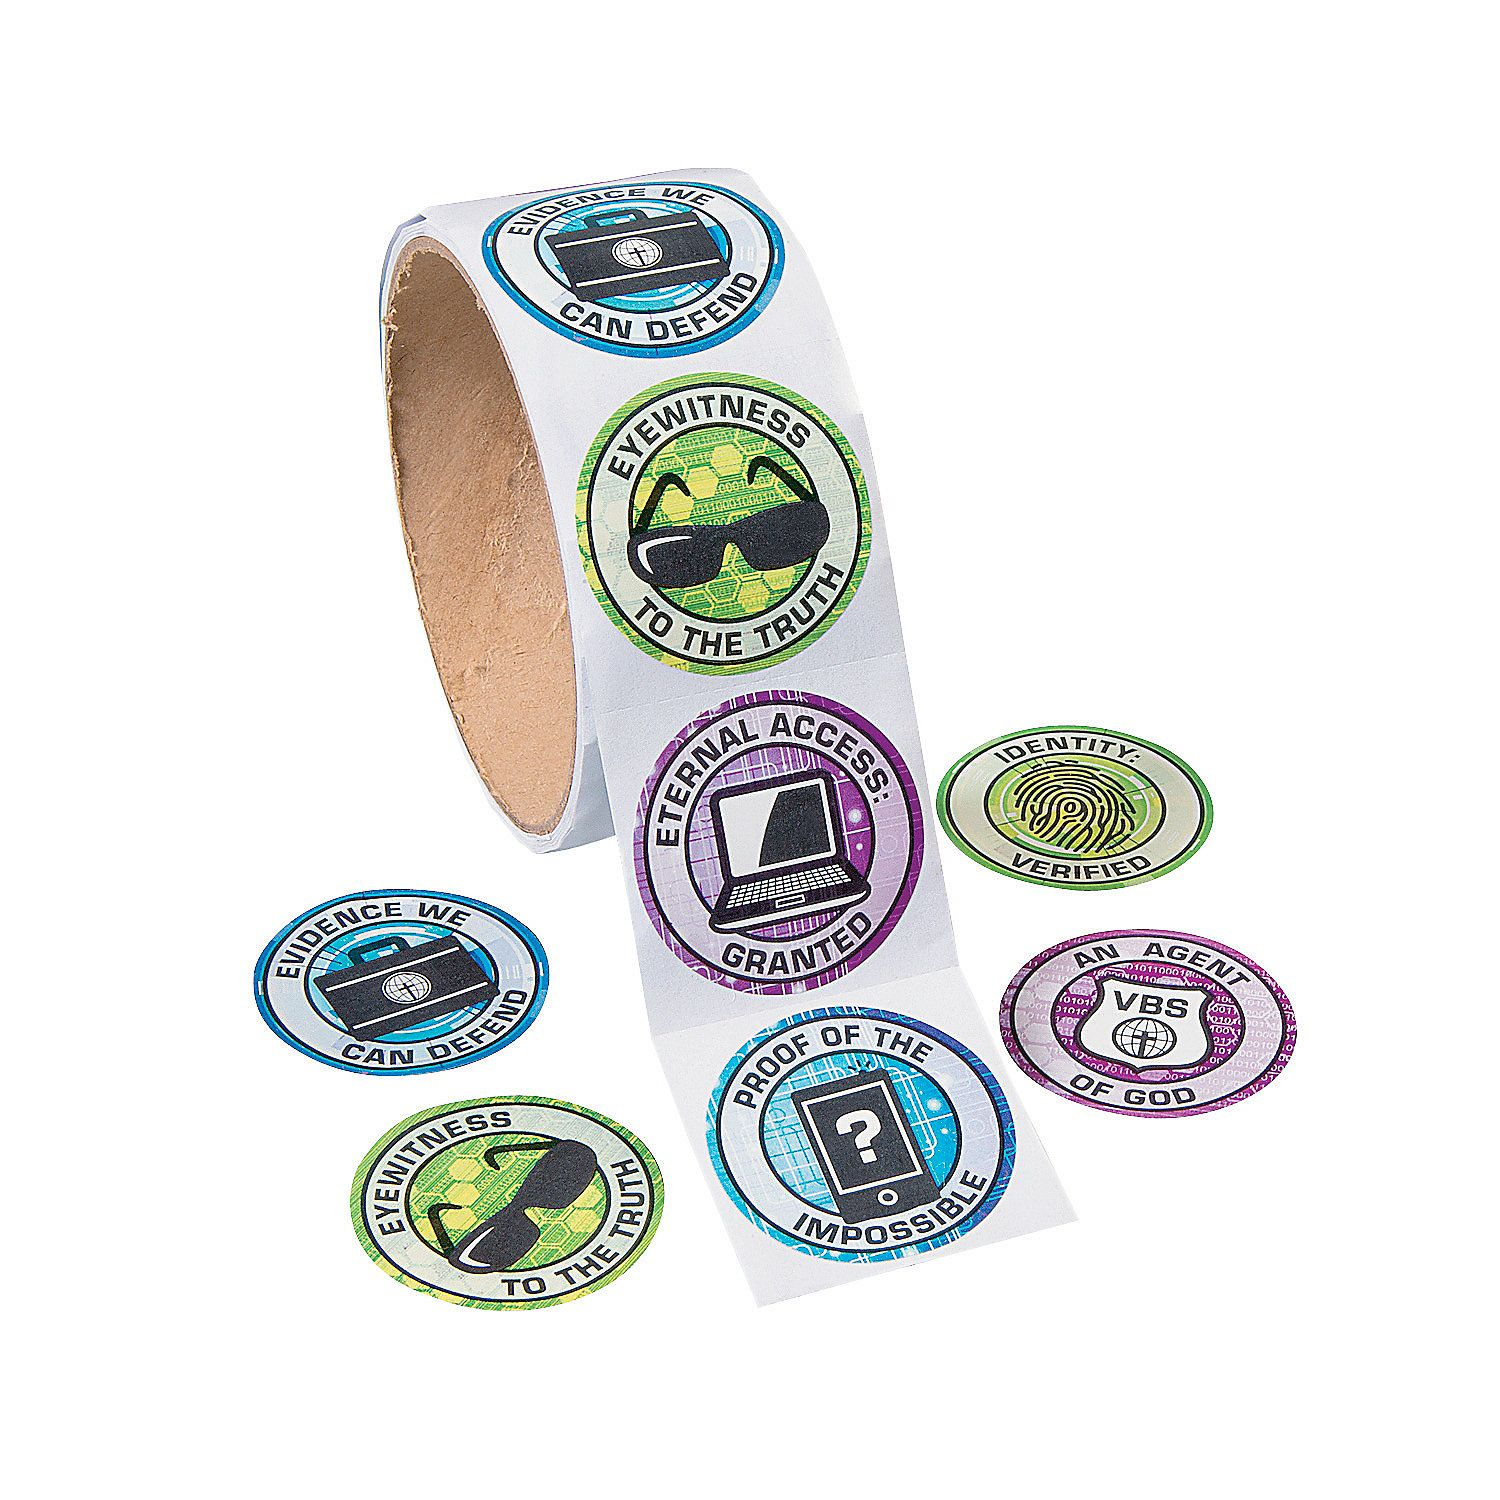 Agents Of Truth Vbs Stickers